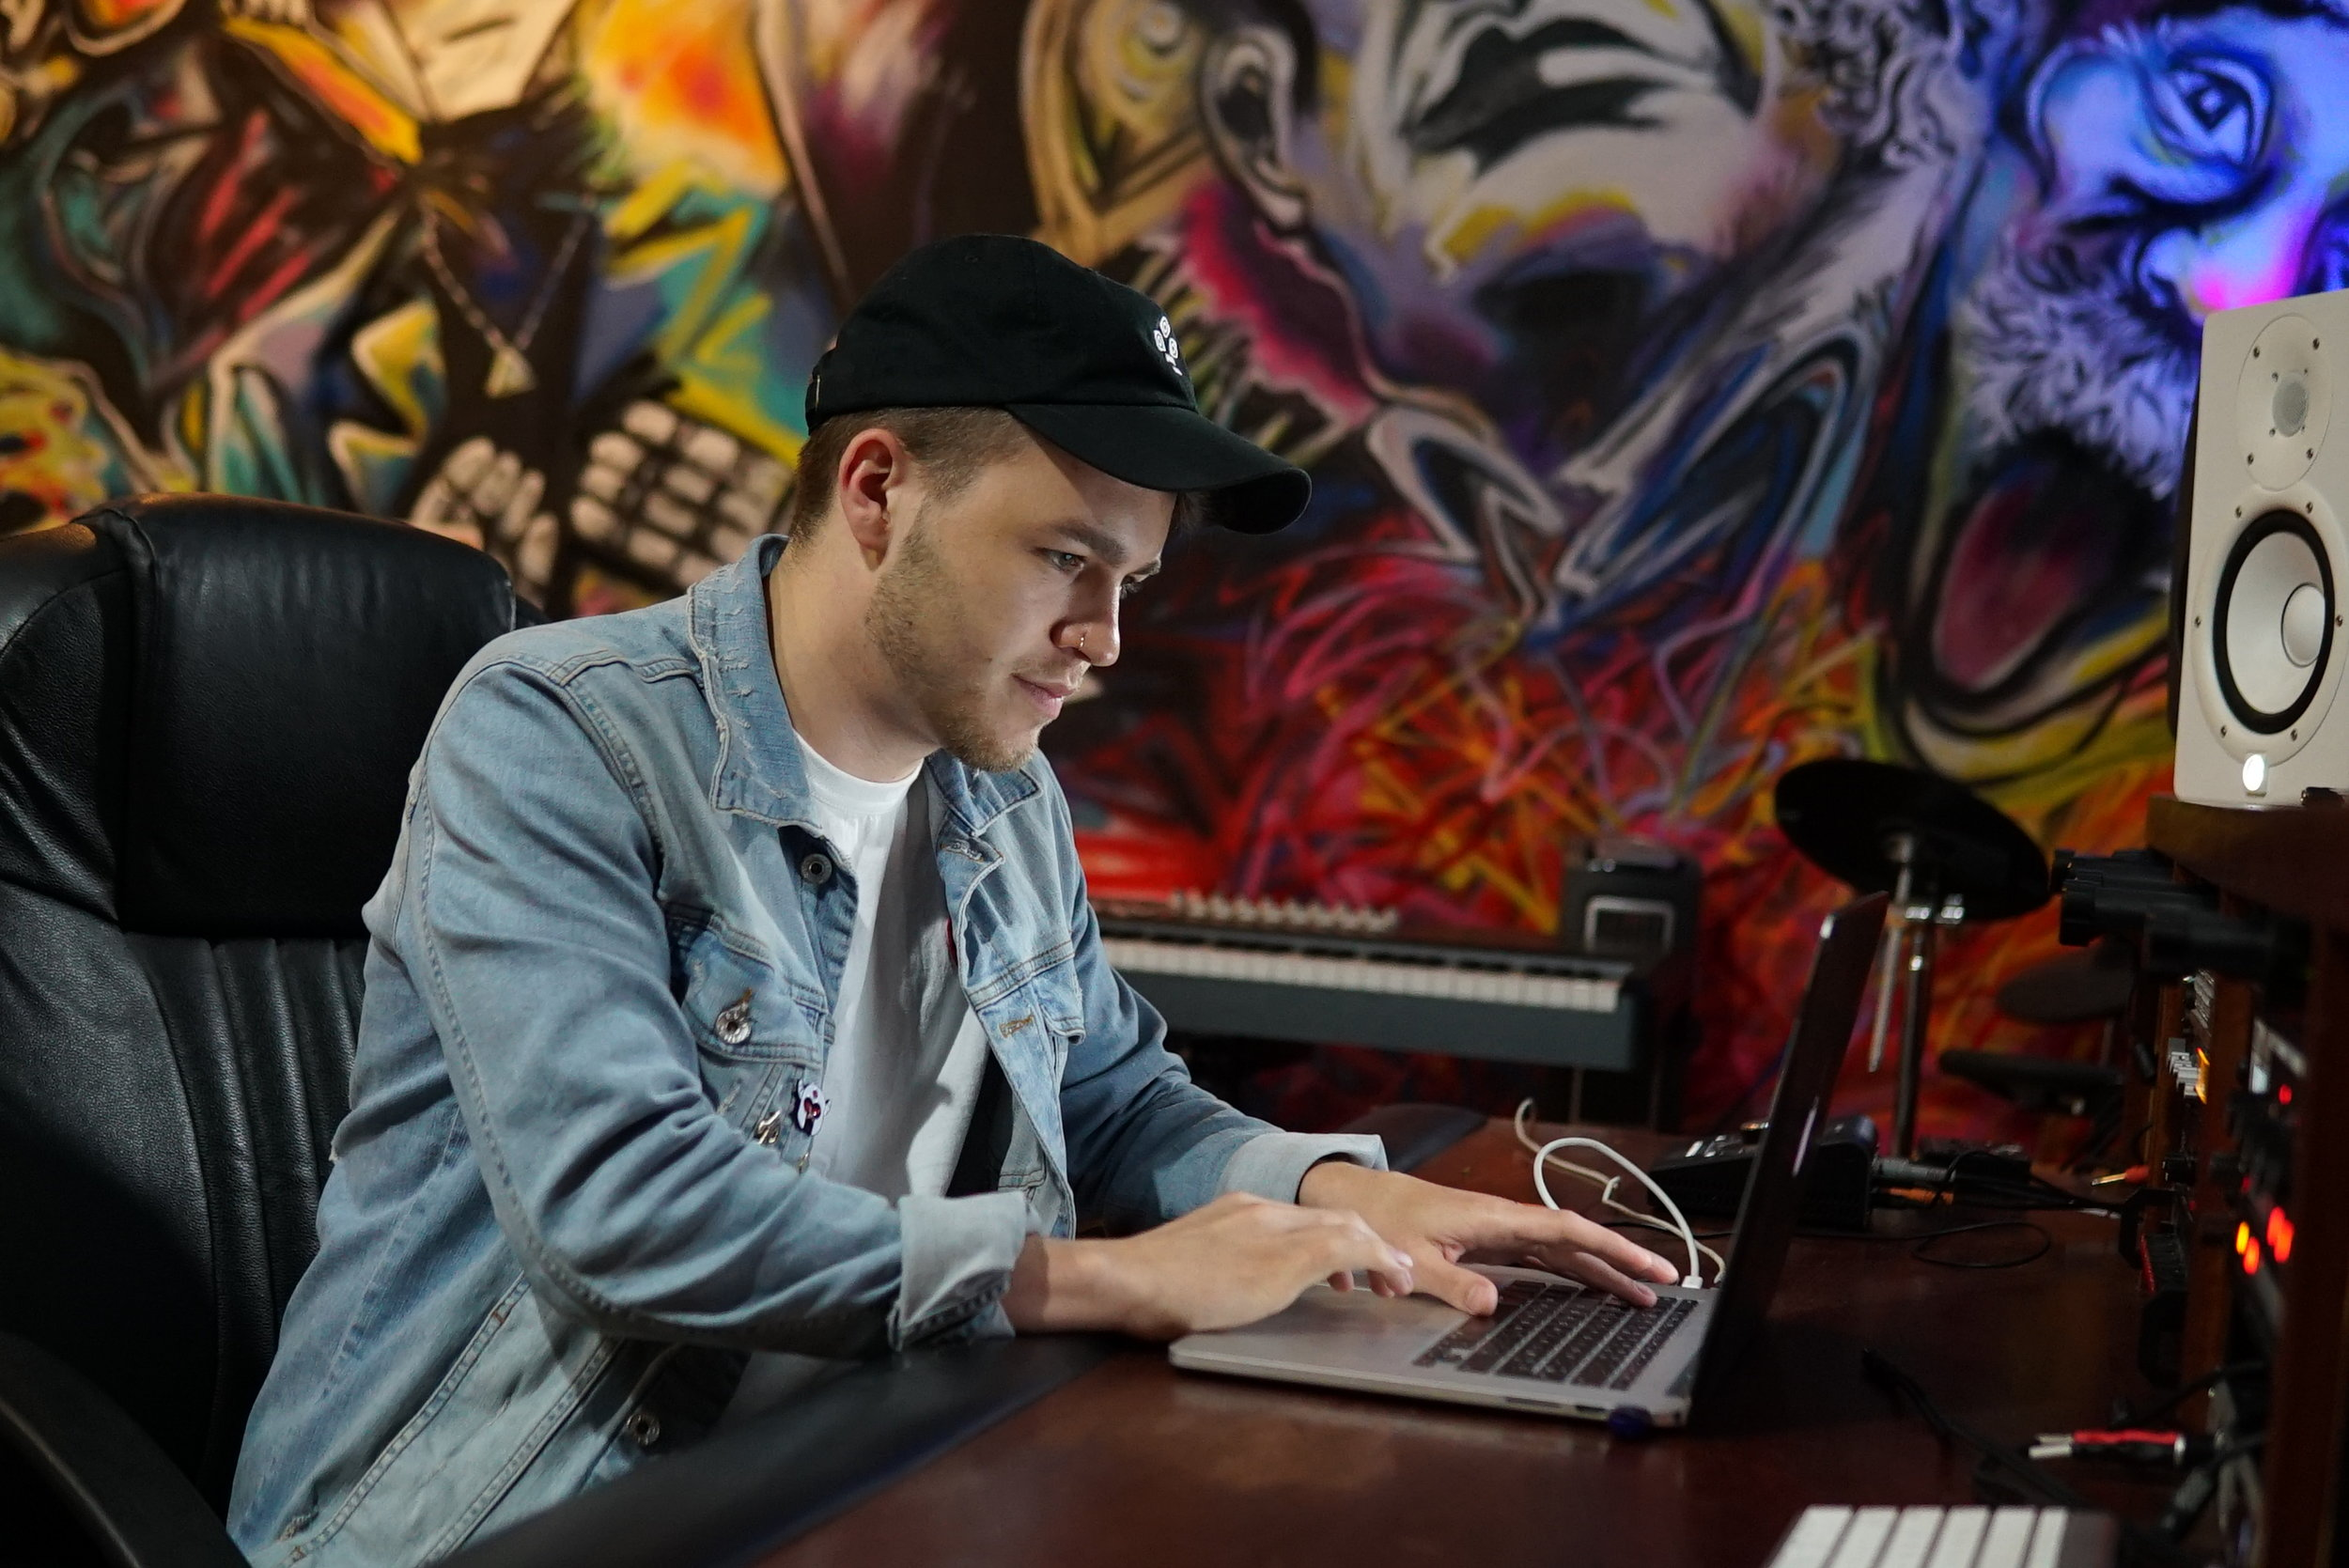 Dubstep producer Eptic using our studio space.